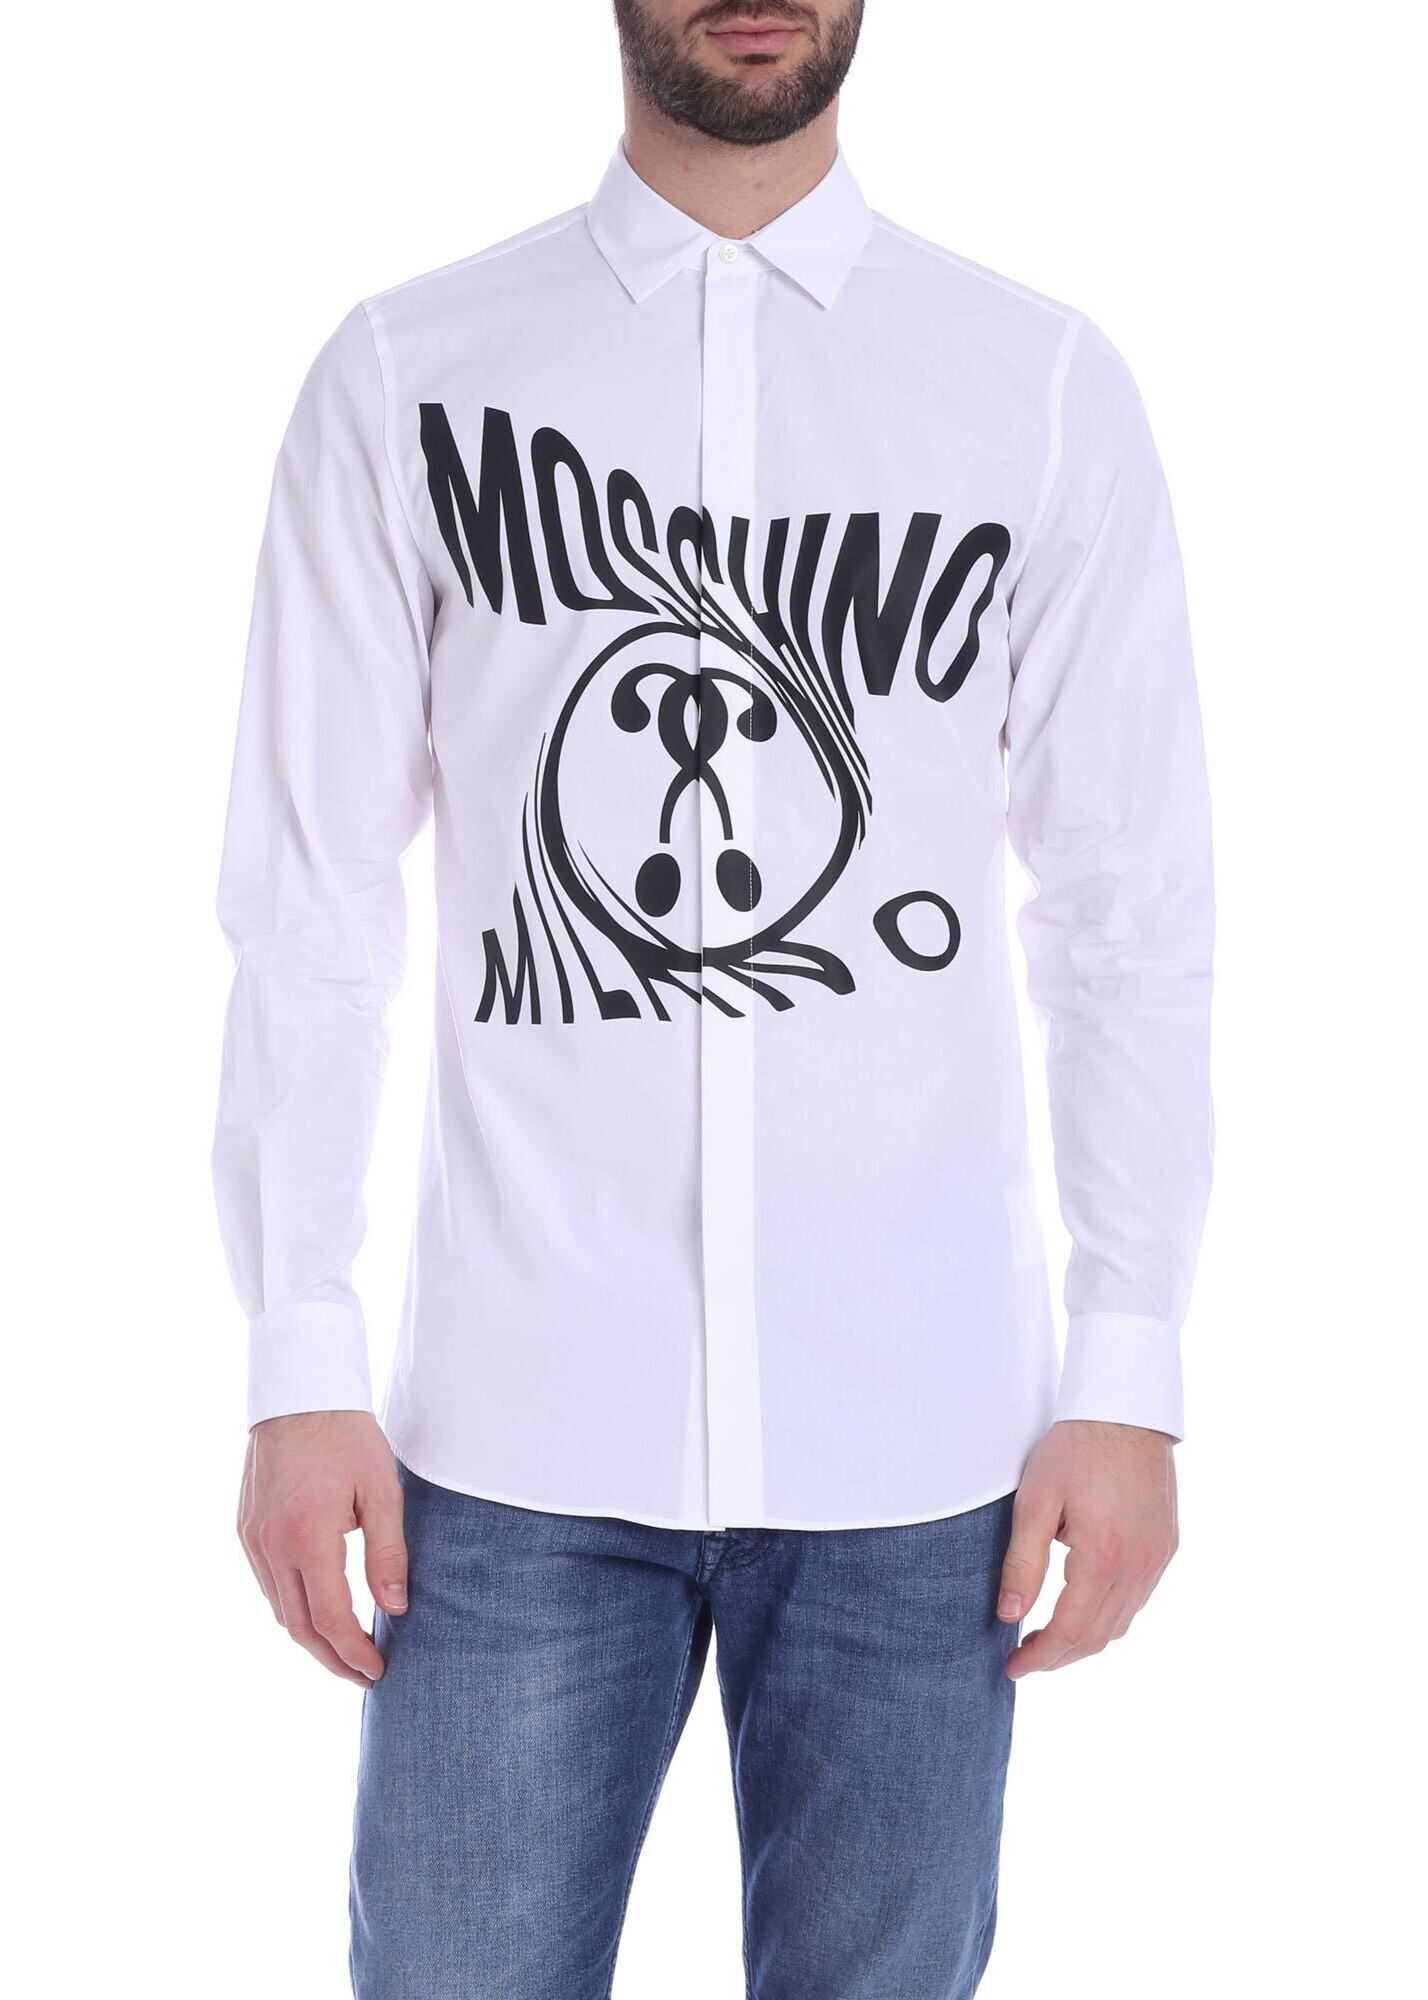 Moschino Logo Distorted Double Question Mark Shirt In White White imagine